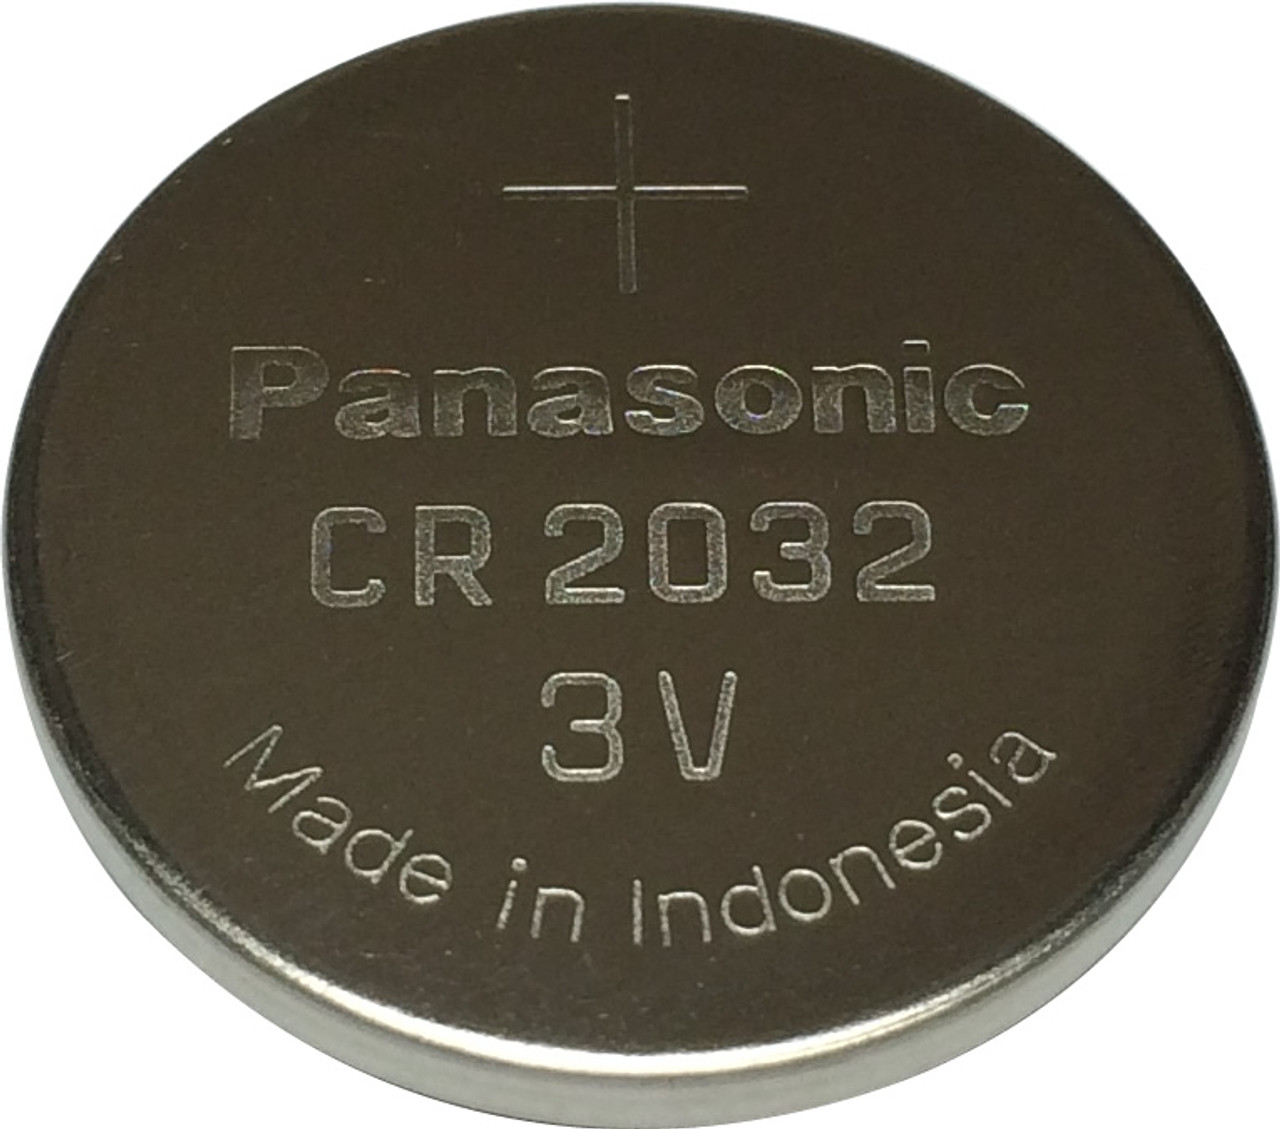 panasonic cr 2032 3v  Panasonic CR2032 Battery - Quantity Discounts - 3V Lithium Coin Cell